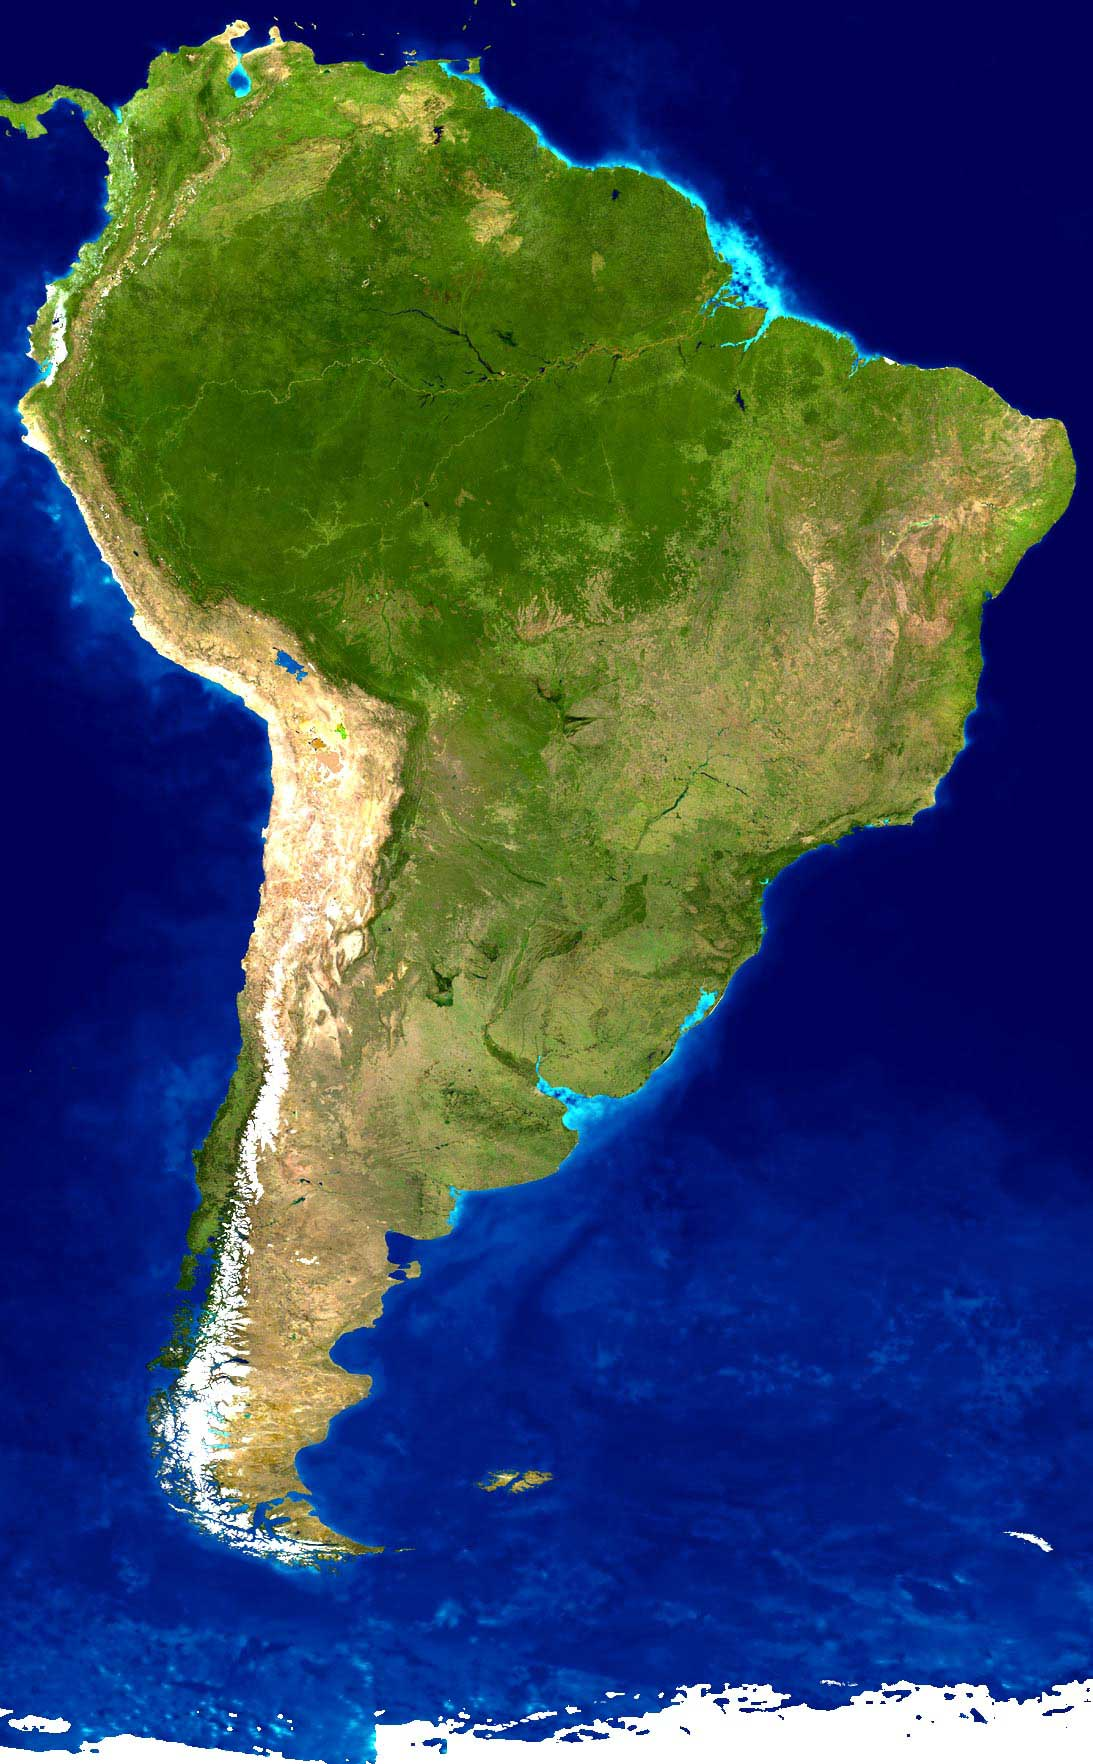 South America Satellite Image large map